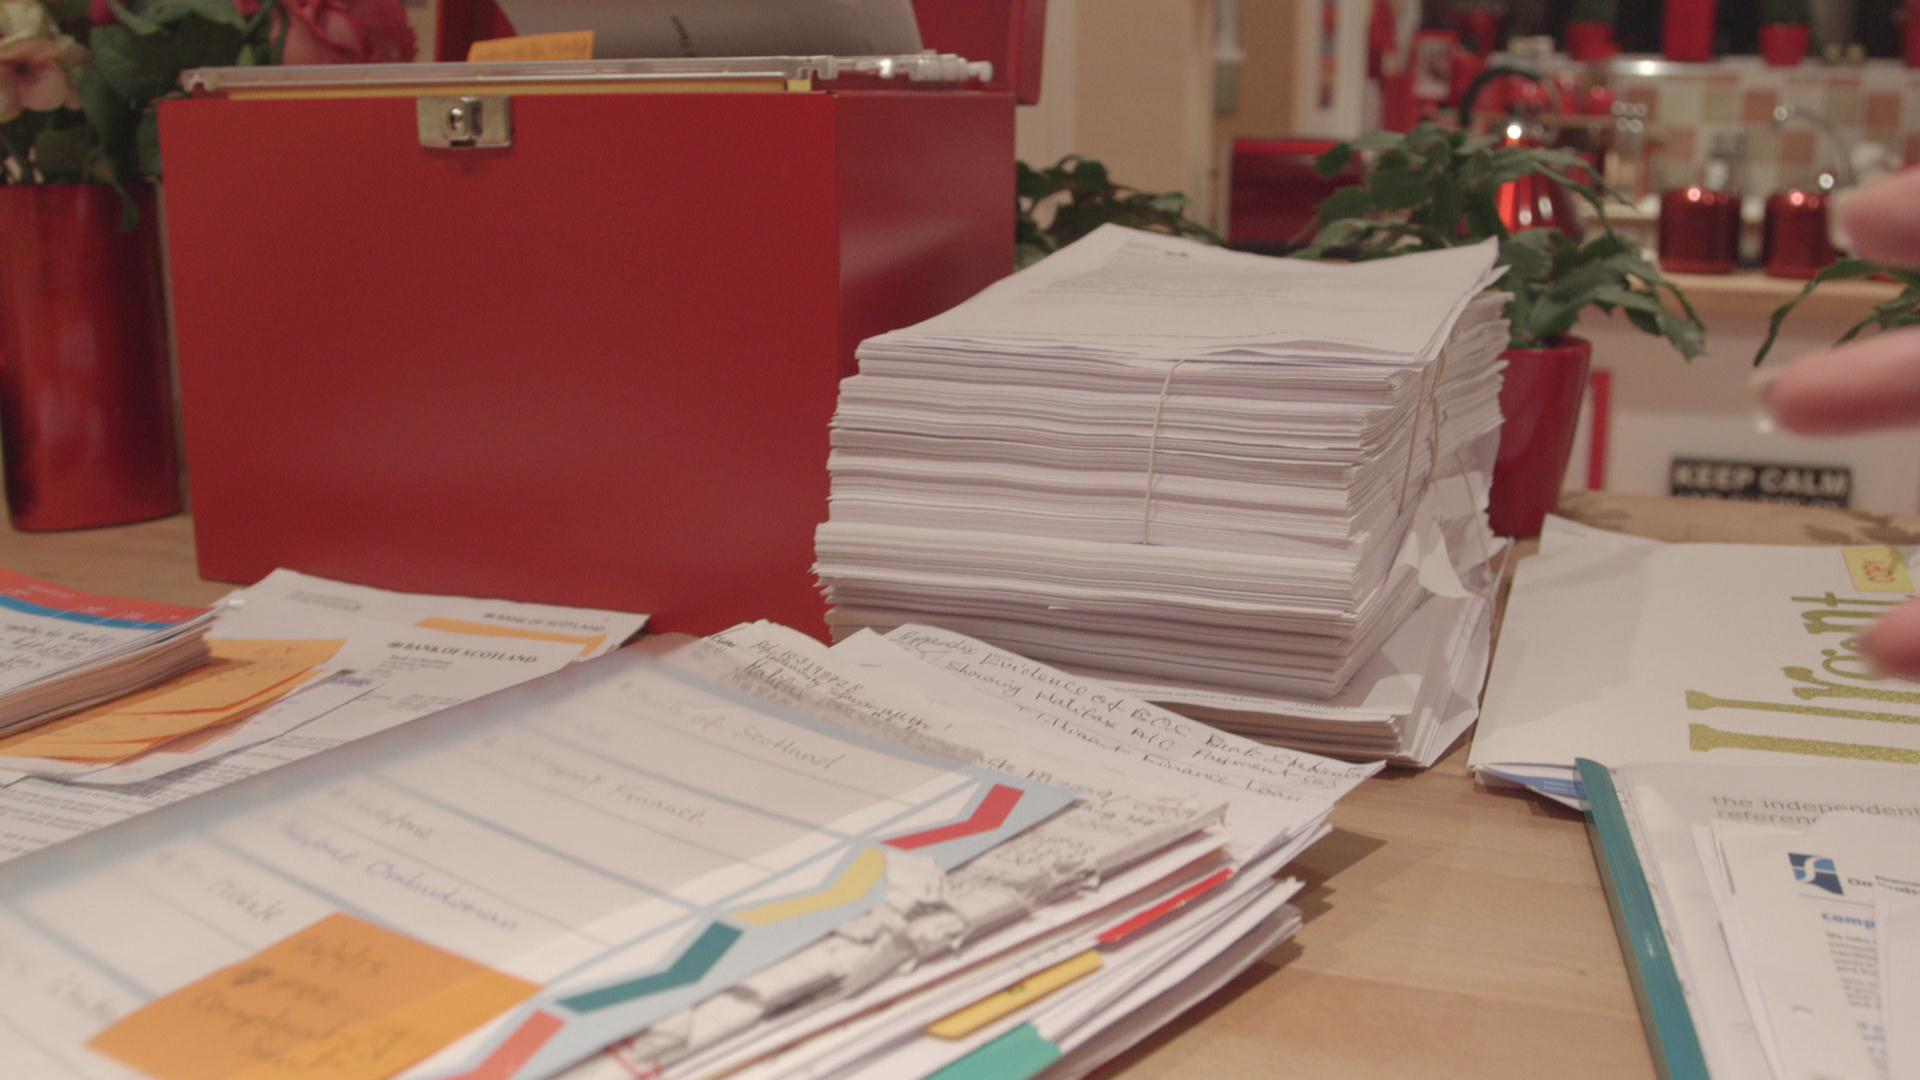 Some of the paperwork caused by BOS